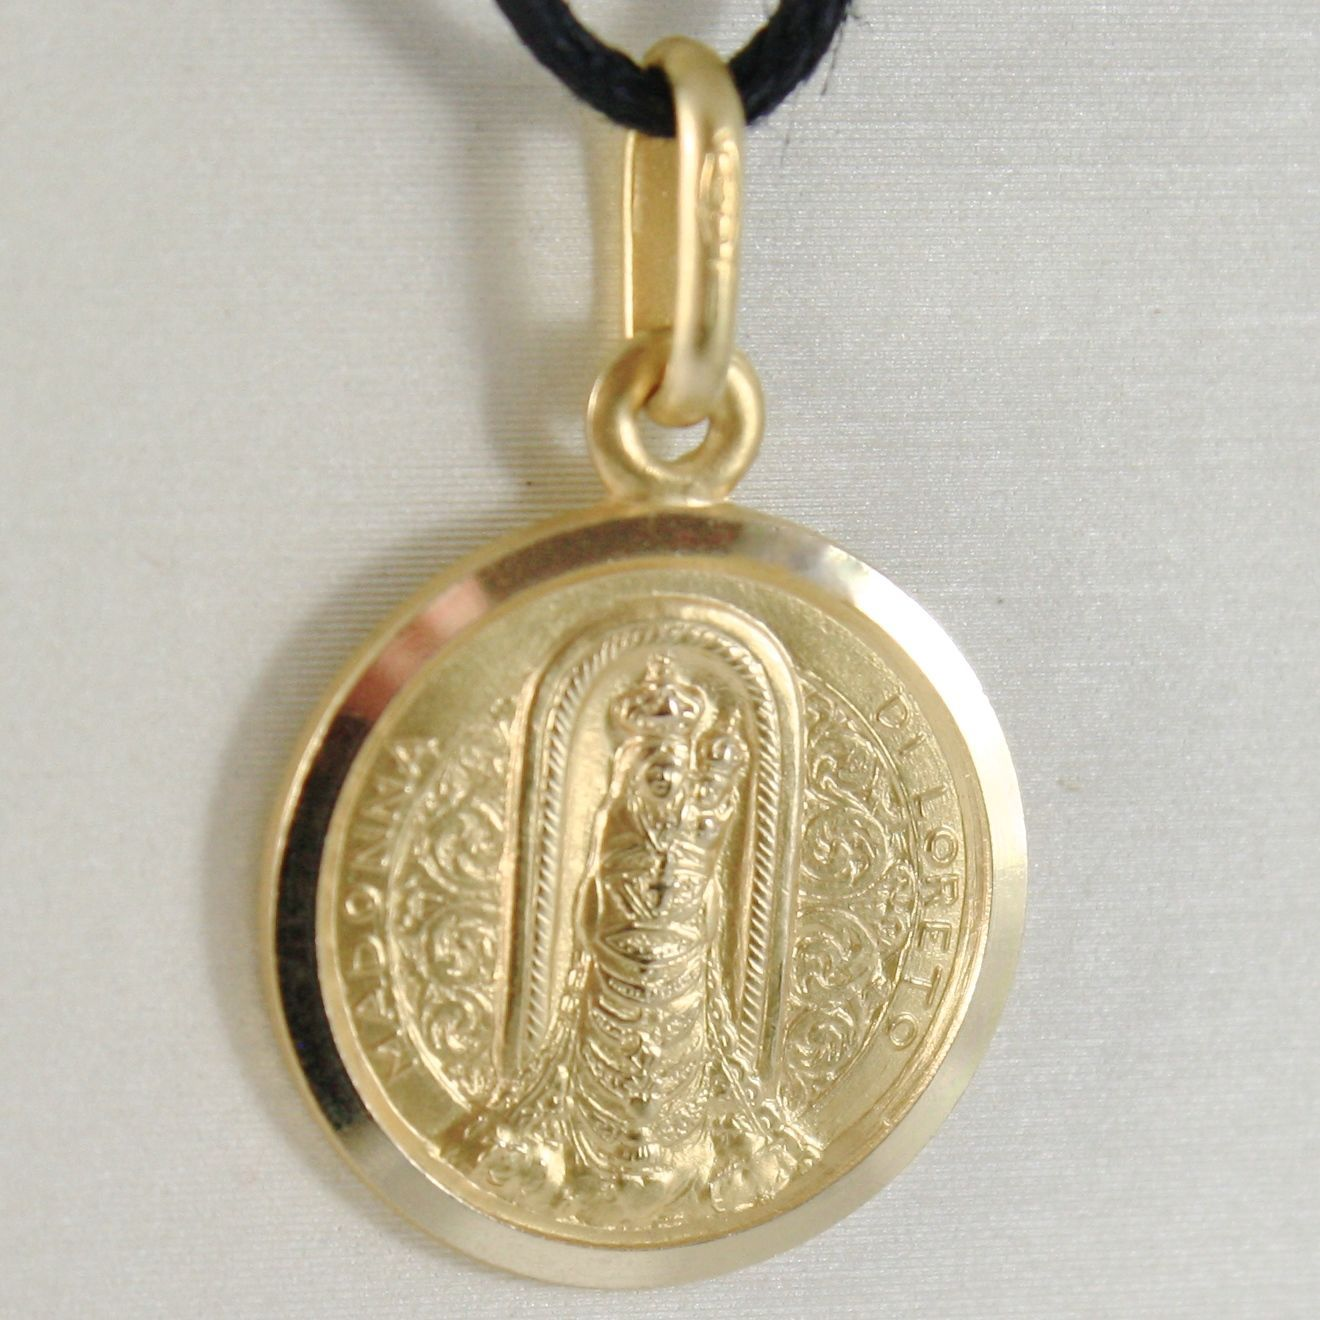 PENDANT MEDAL YELLOW GOLD 750 18K, MADONNA DI LORETO, 15 MM, MADE IN ITALY